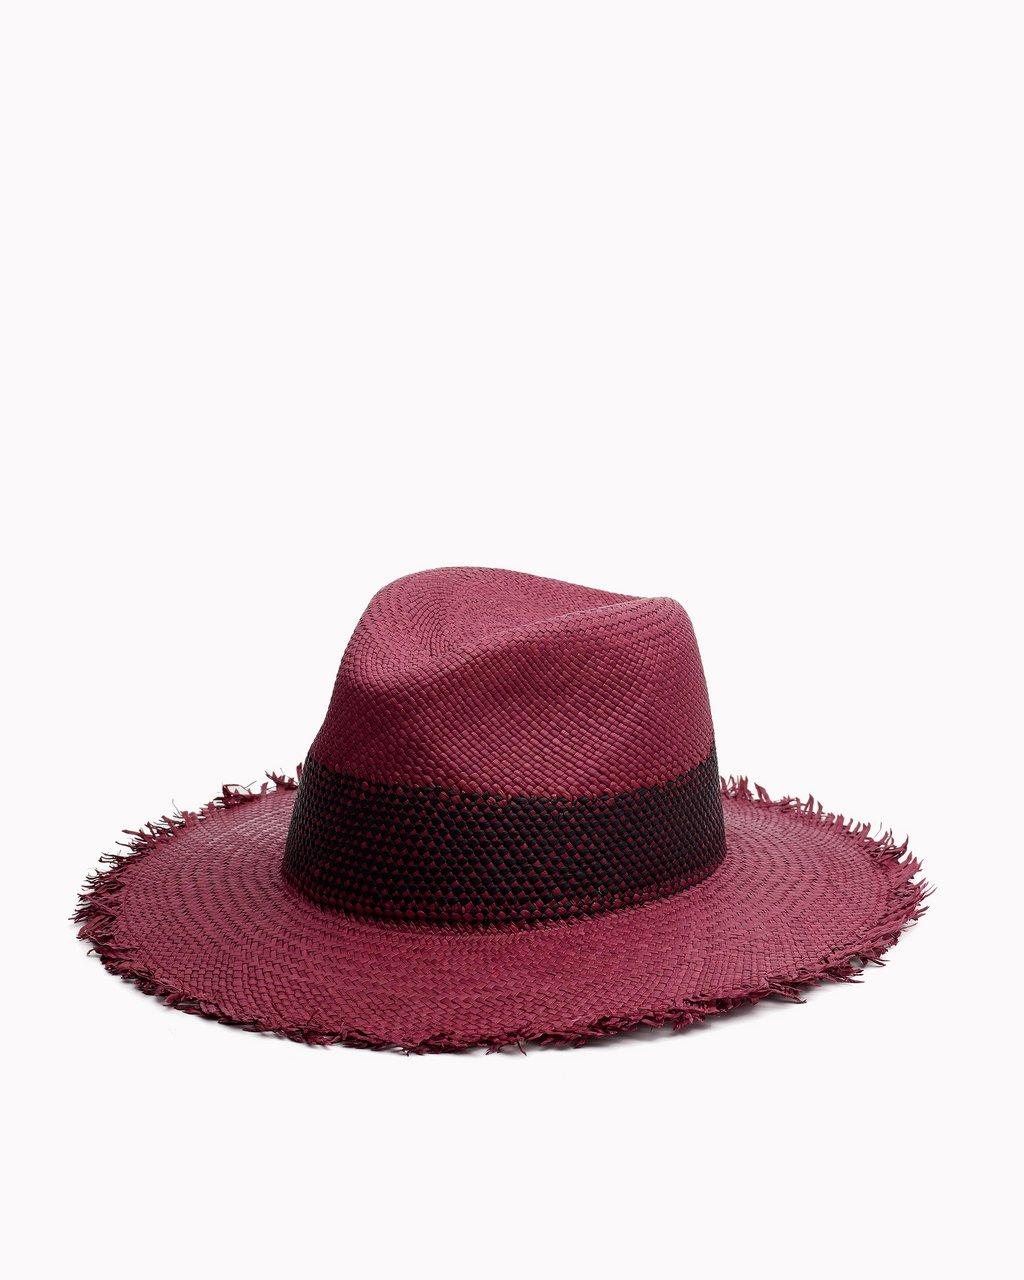 FRAYED EDGE PANAMA HAT